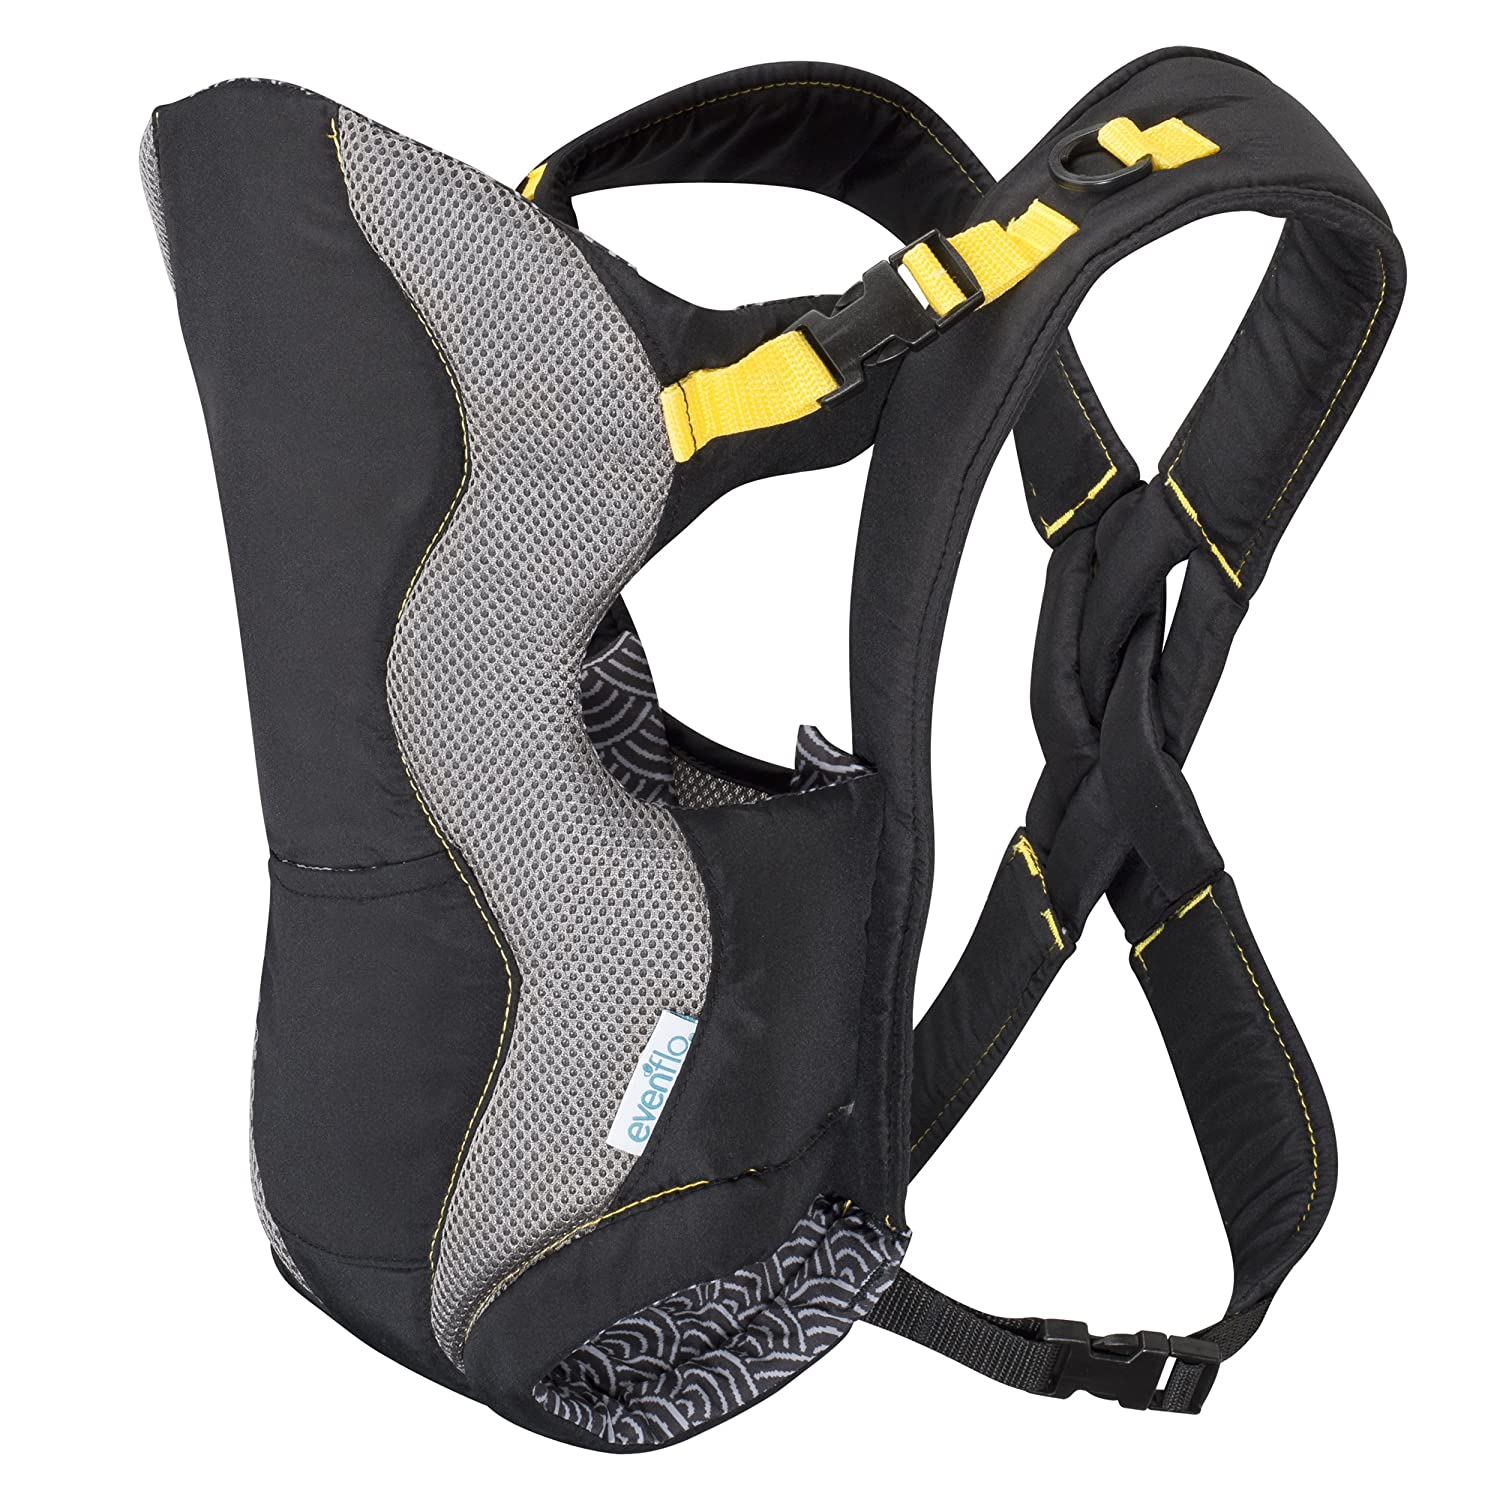 Evenflo 8911215 Evenflo Breathable Carrier Koi 08911215